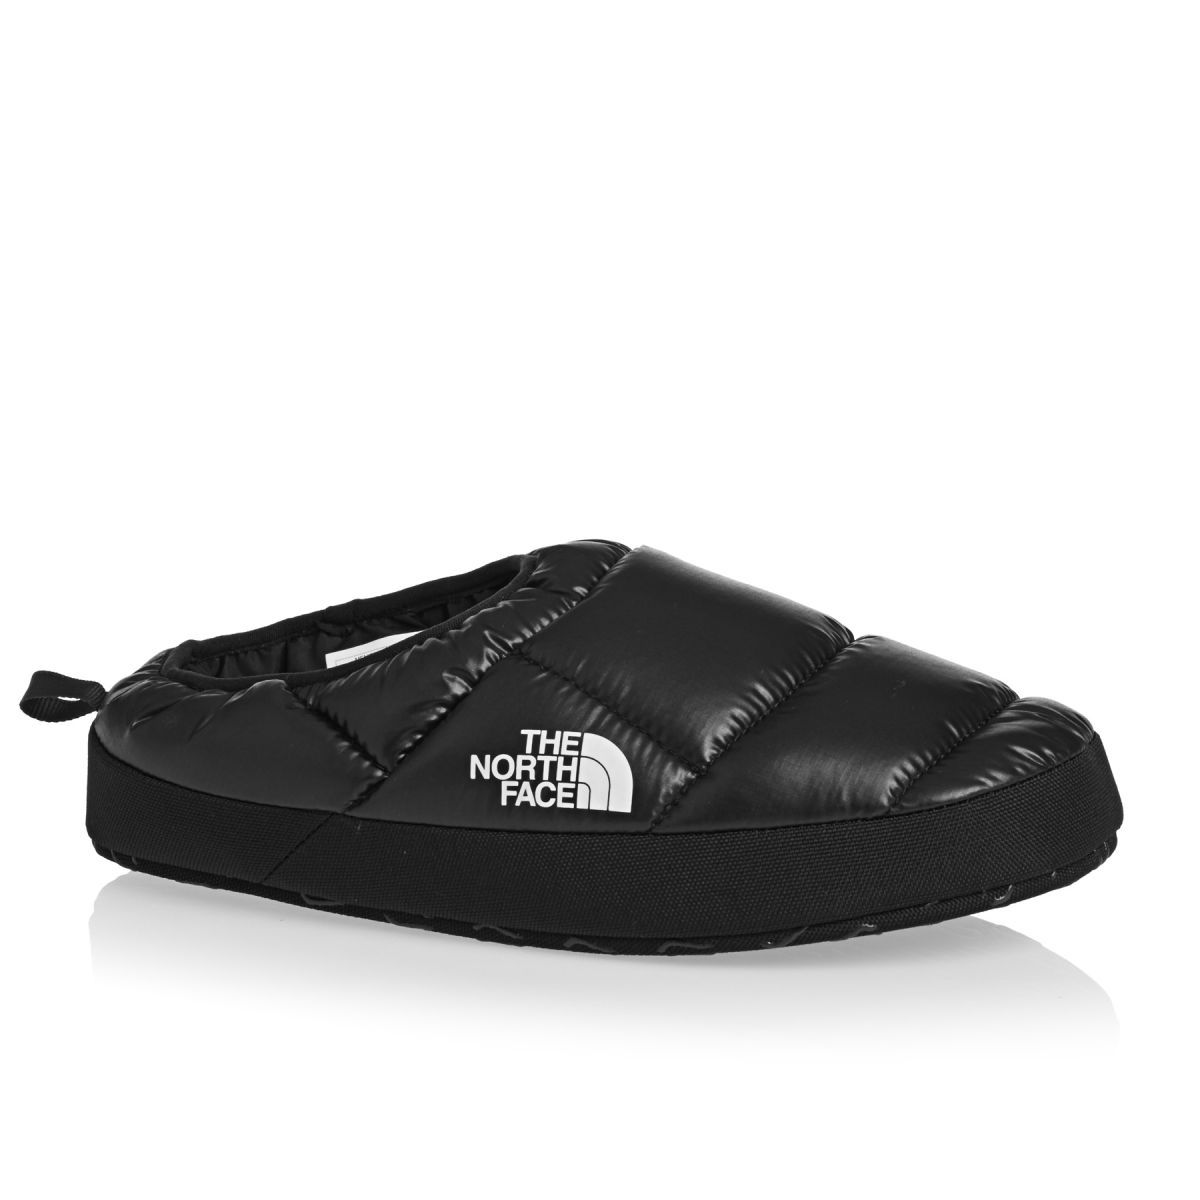 The North Face Slippers - The North Face Nuptse Tent Mule III Slippers - Shiny Black  sc 1 st  Pinterest & The North Face Slippers - The North Face Nuptse Tent Mule III ...